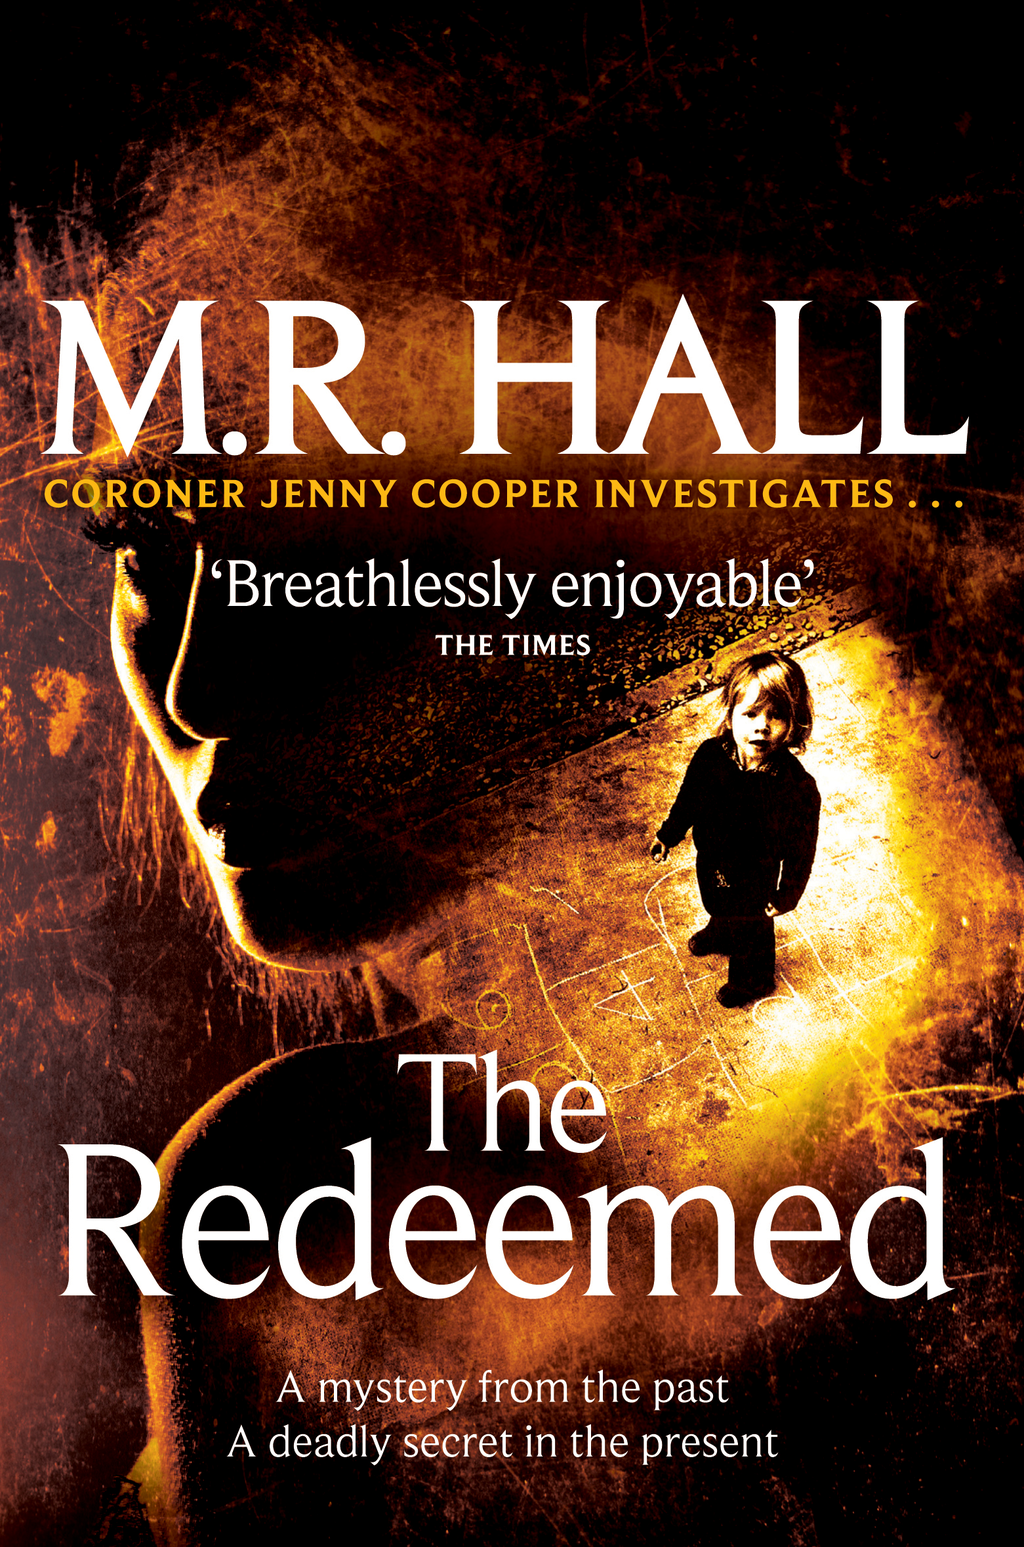 The Redeemed Coroner Jenny Cooper mystery -book 3